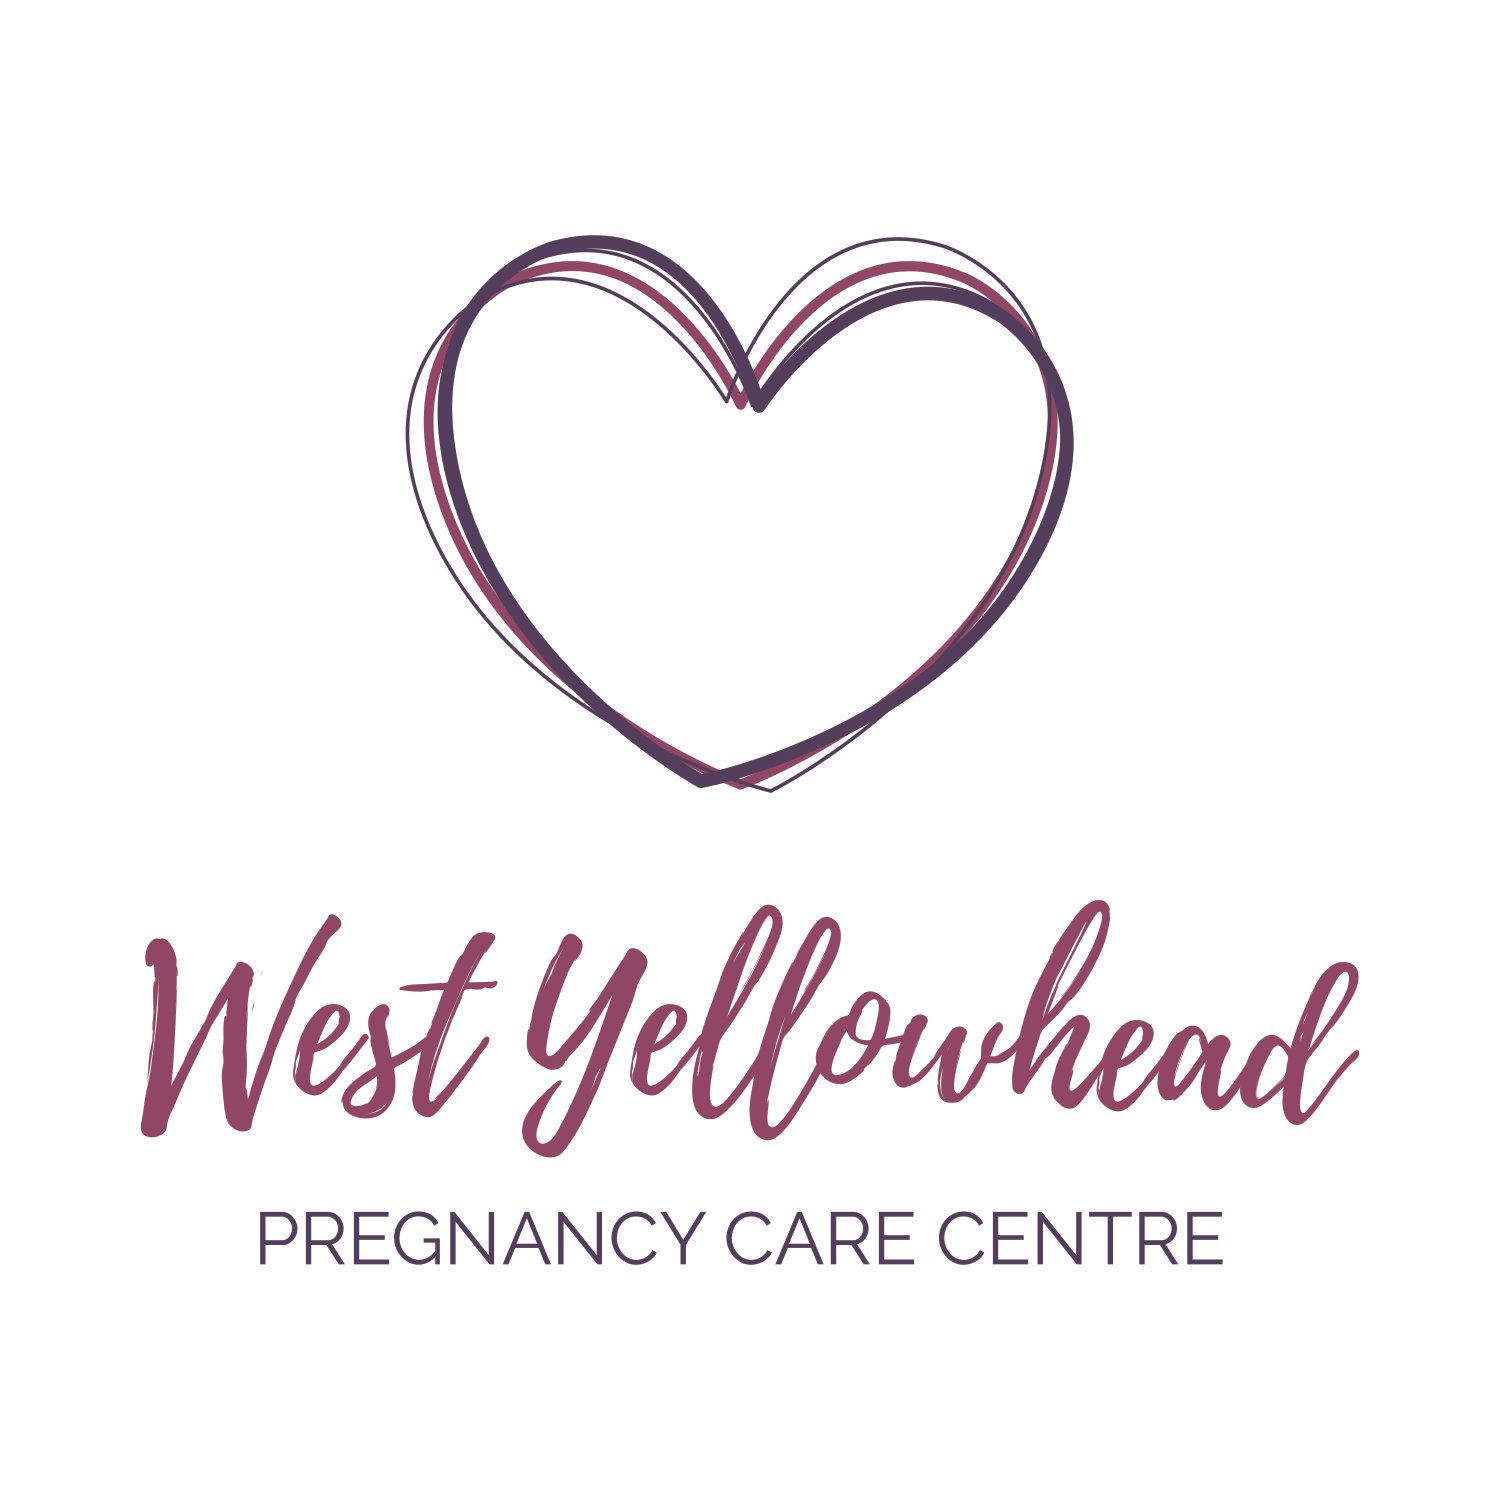 West Yellowhead Pregnancy Care Centre